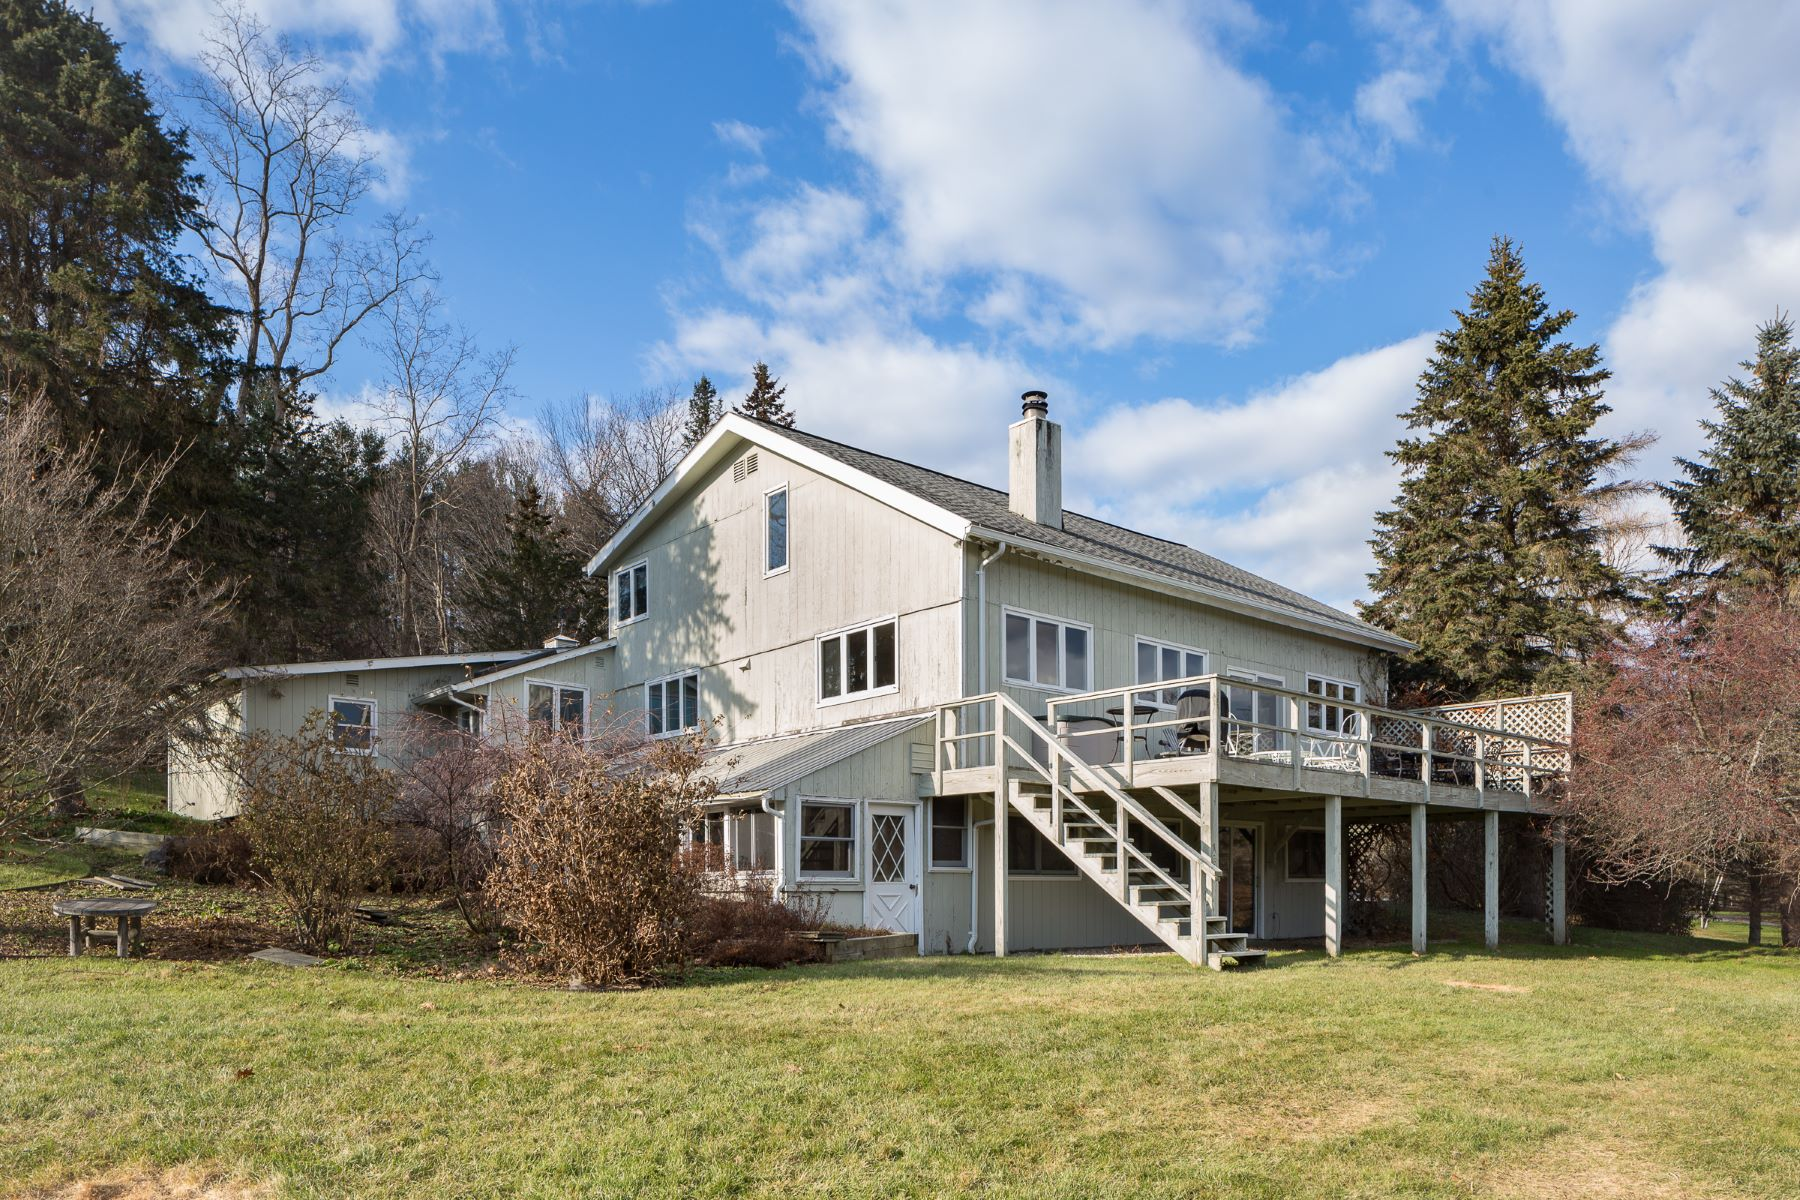 House for Sale at Contemporary Country Retreat 1748 County Rte 5 Canaan, New York 12029 United States